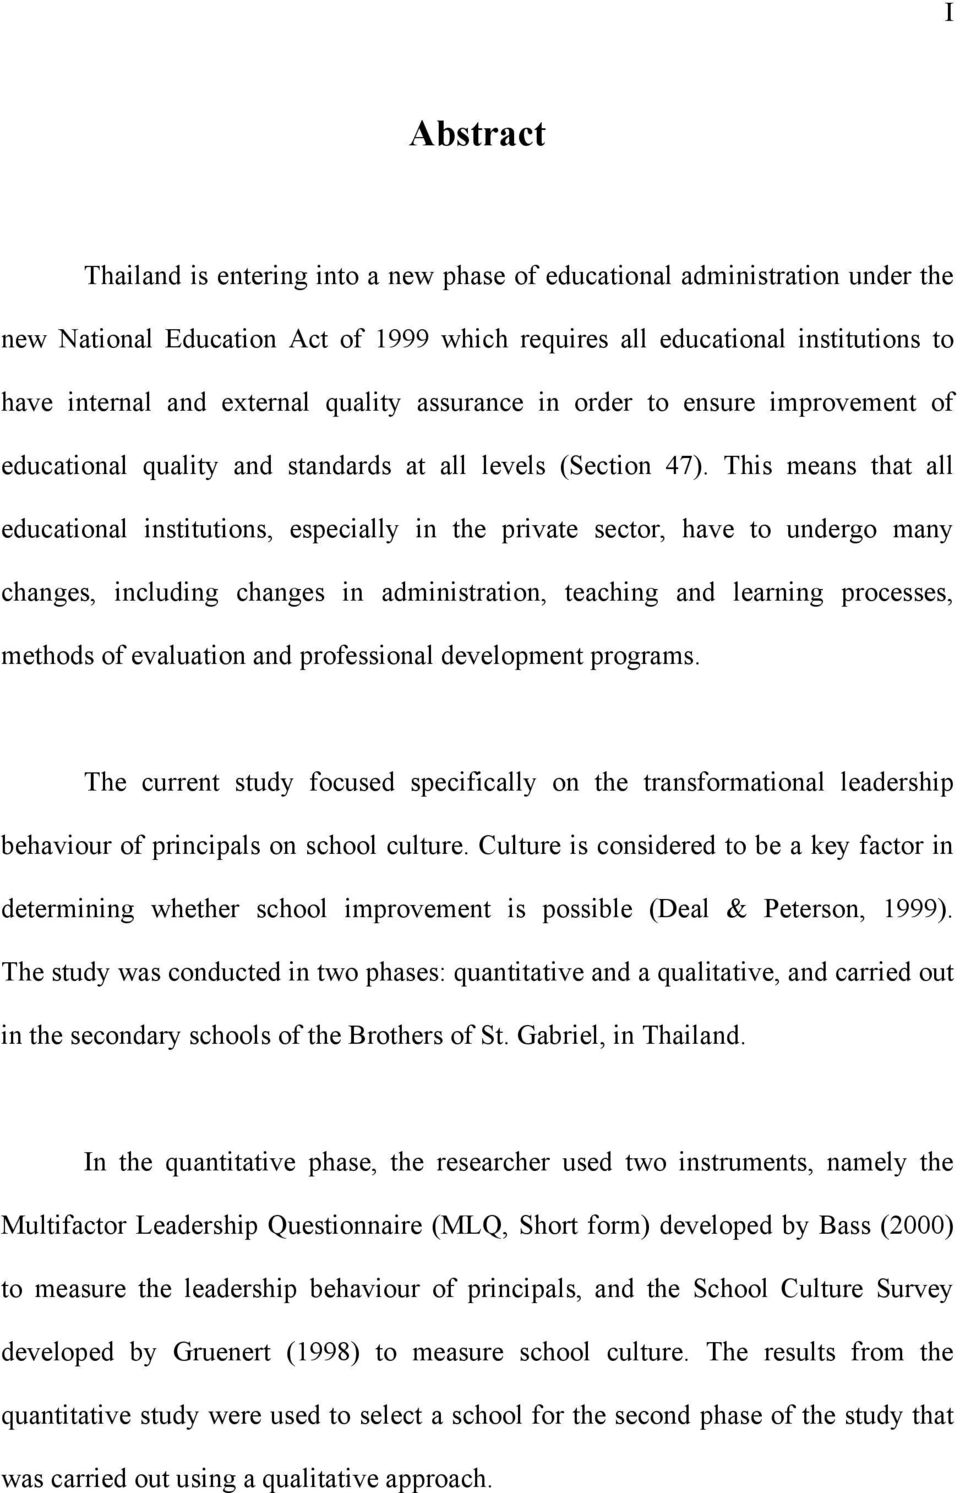 This means that all educational institutions, especially in the private sector, have to undergo many changes, including changes in administration, teaching and learning processes, methods of